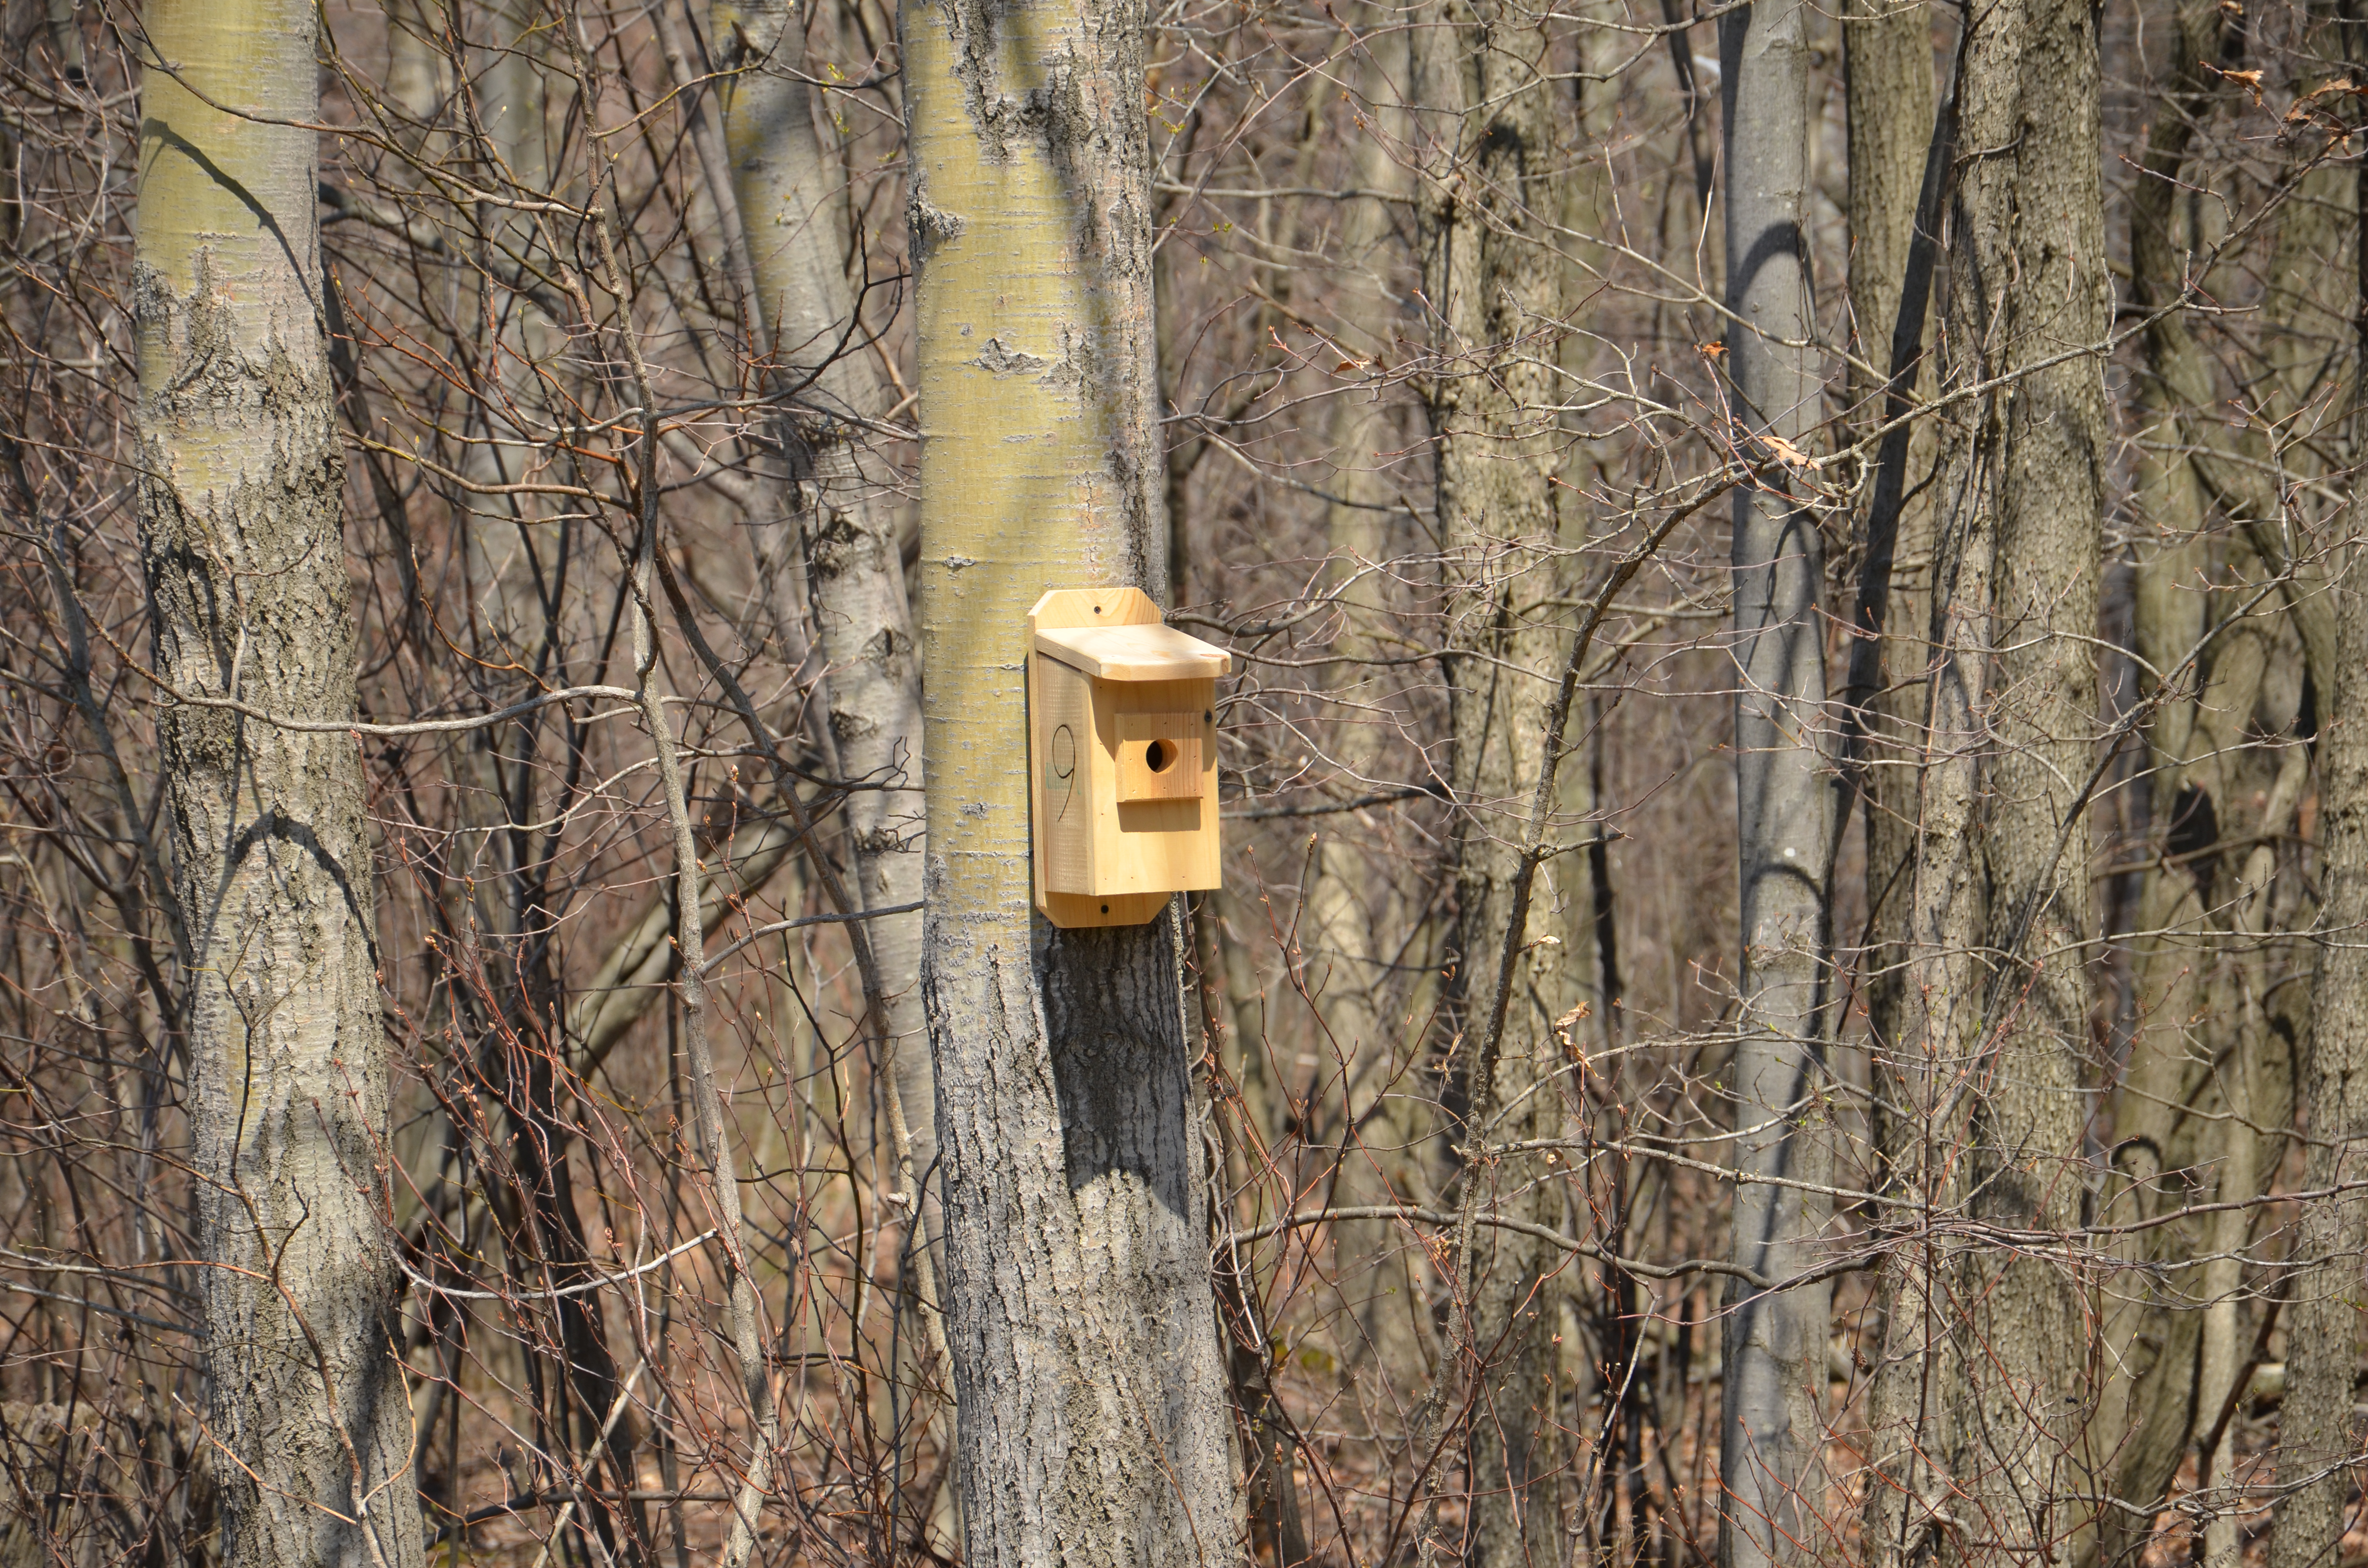 Bird House Along Trail